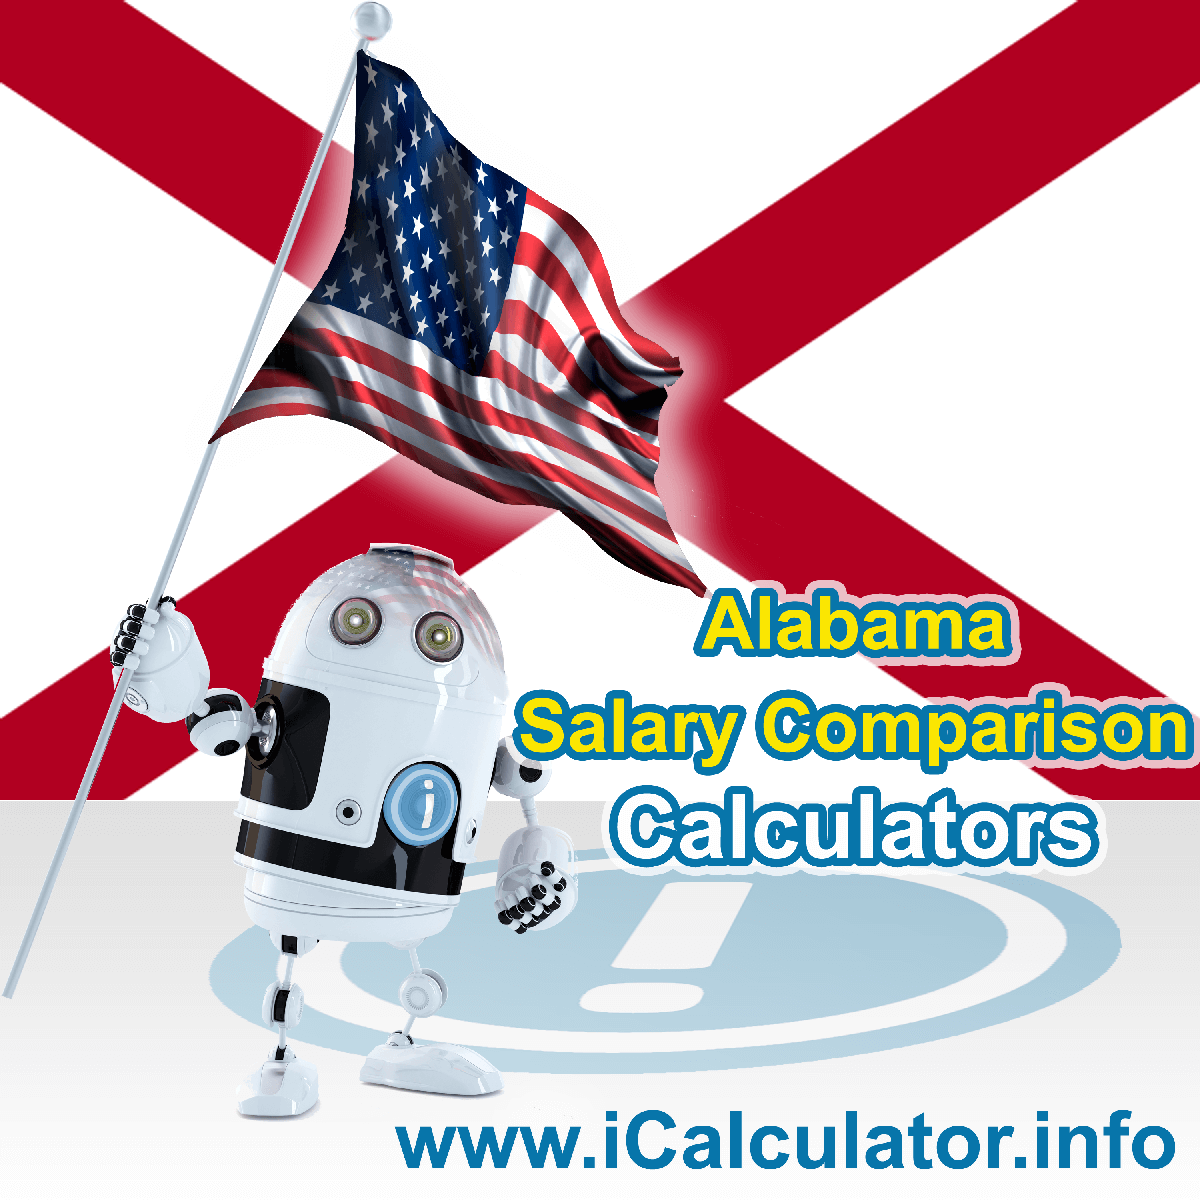 Alabama Salary Comparison Calculator 2020 | iCalculator | The Alabama Salary Comparison Calculator allows you to quickly calculate and compare upto 6 salaries in Alabama or between other states for the 2020 tax year and historical tax years. Its an excellent tool for jobseekers, pay raise comparison and comparison of salaries between different US States